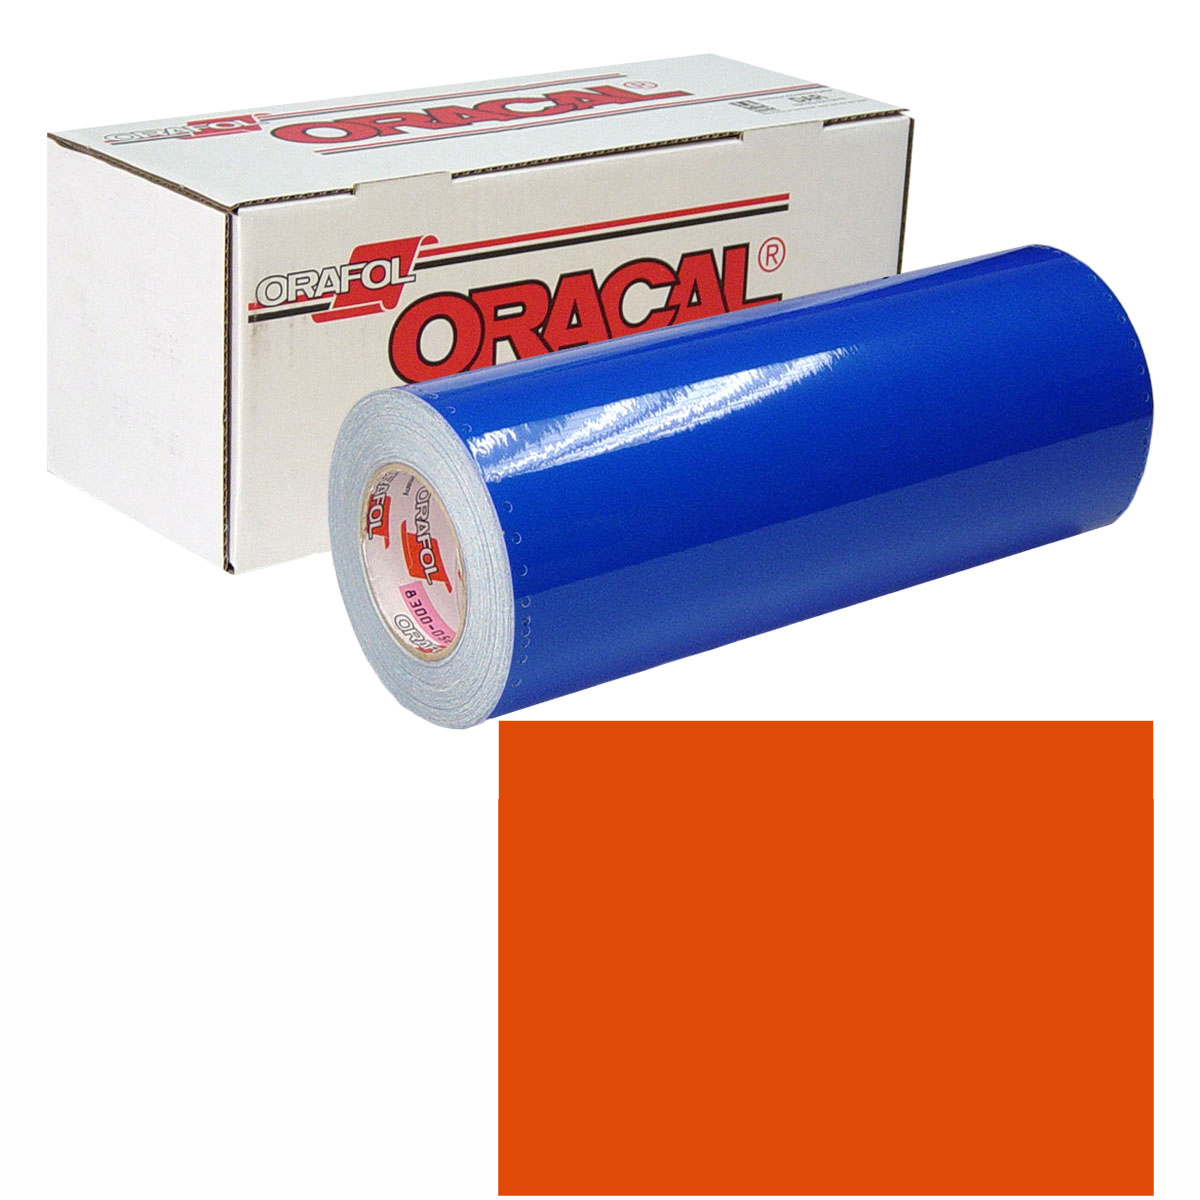 ORACAL 631 Unp 48in X 50yd 034 Orange